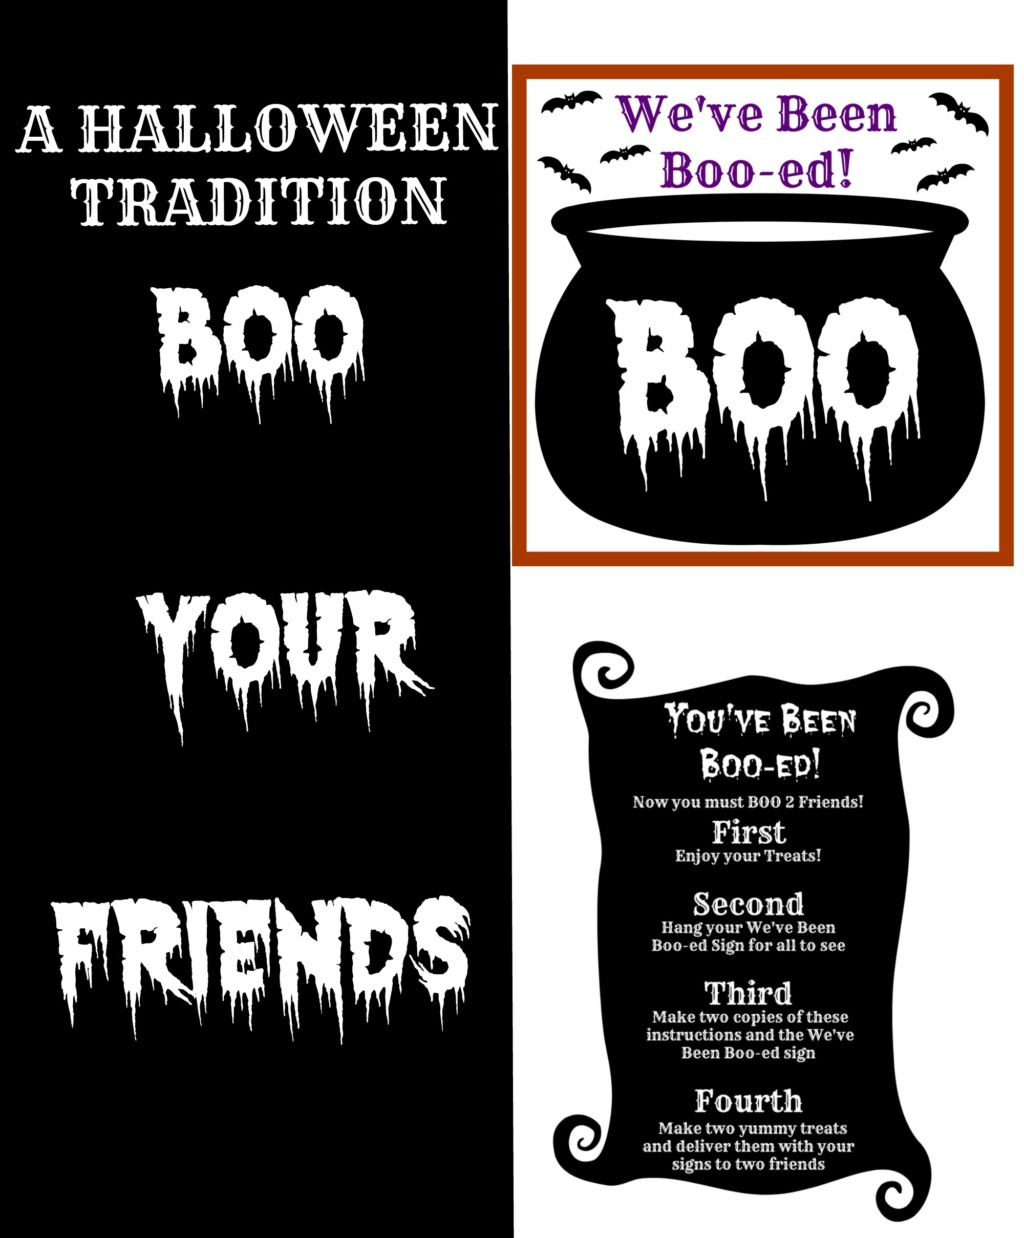 A Halloween Tradition – Boo-ing Your Friends